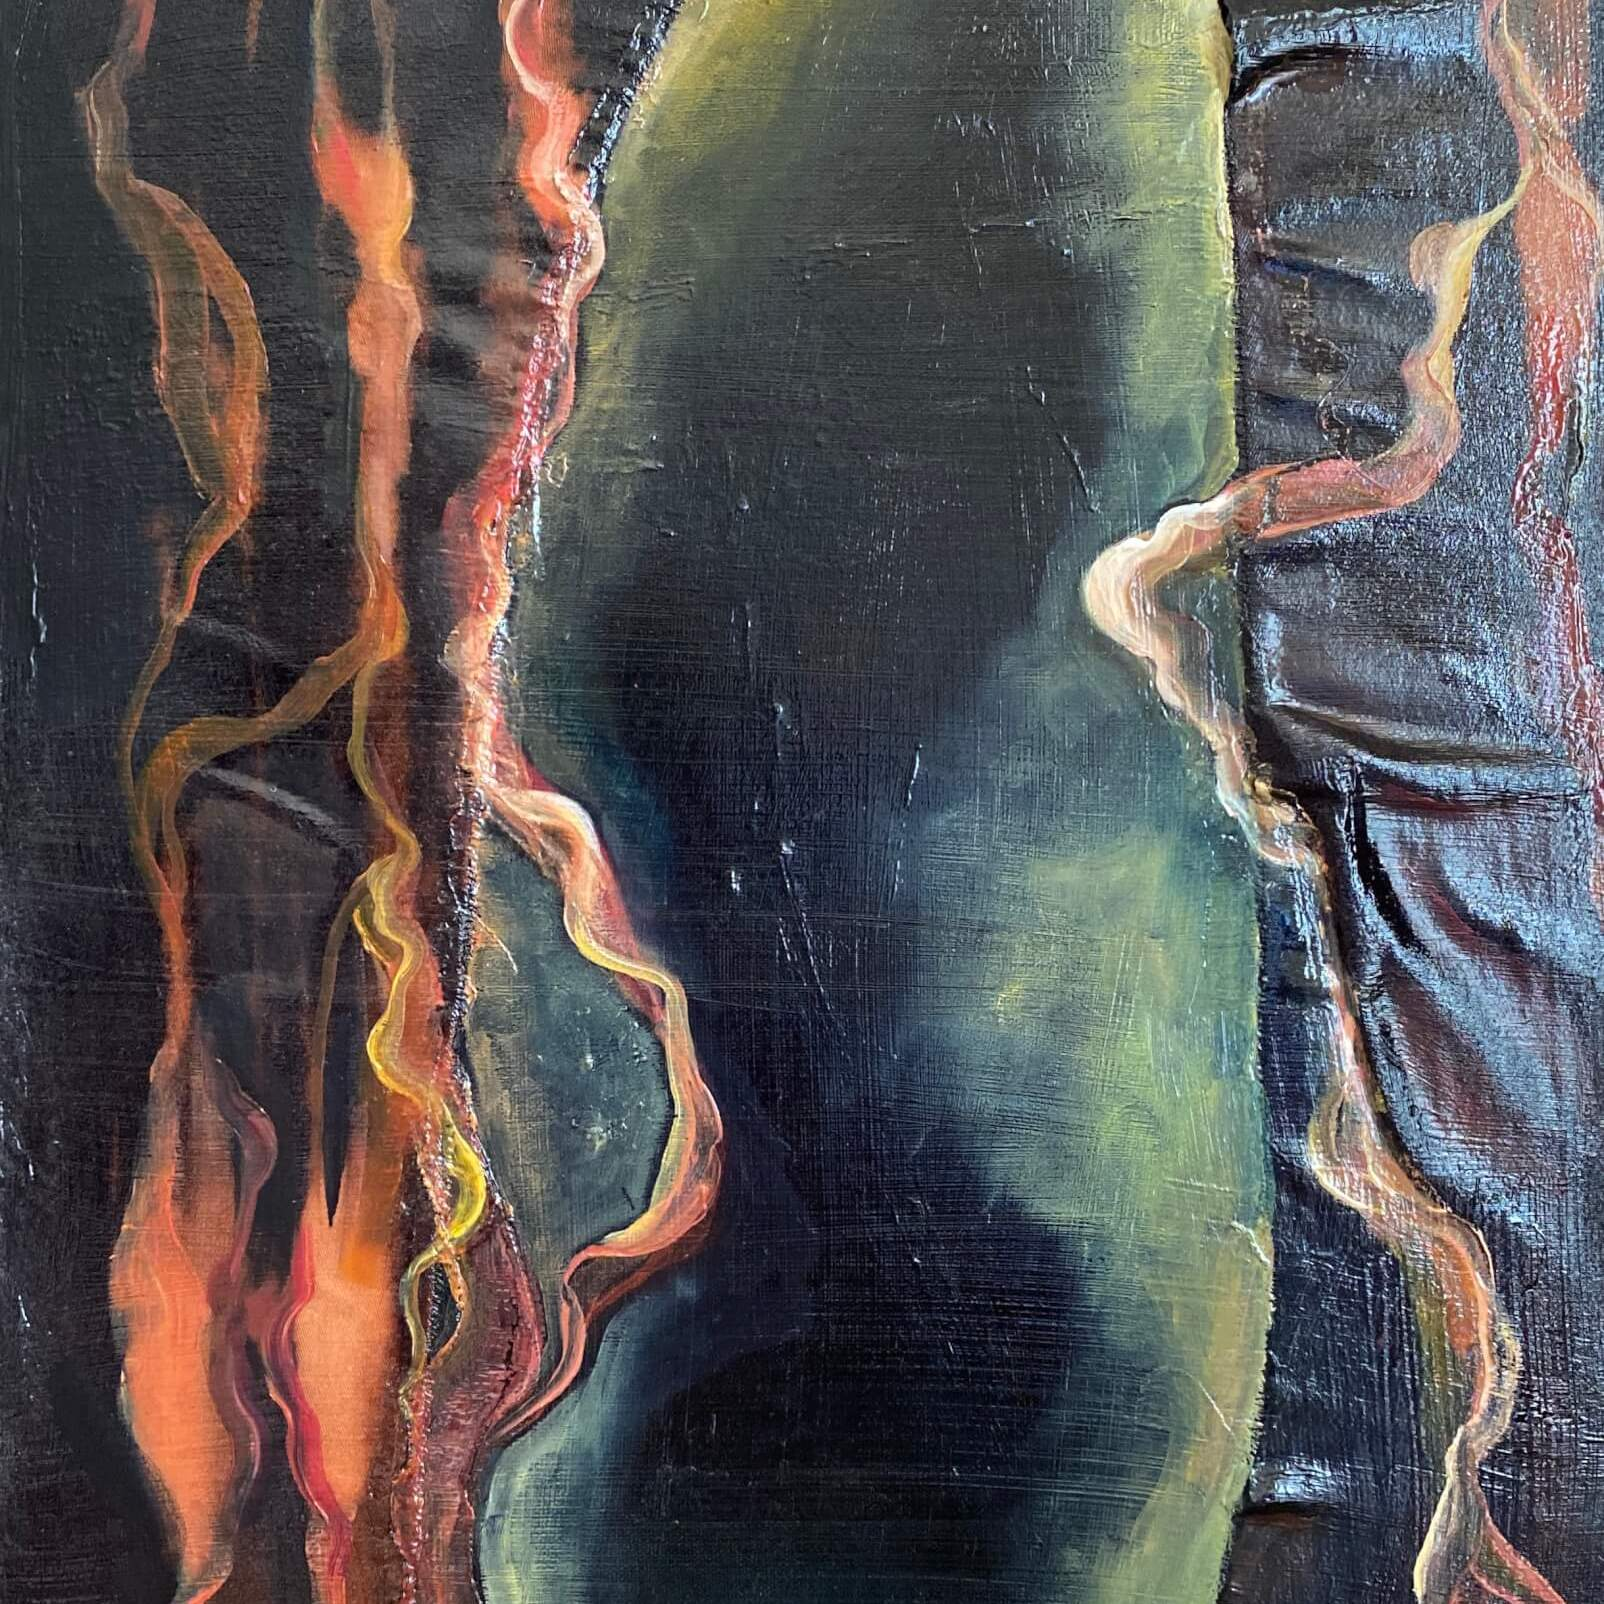 Behind the Curtain - Abstract Painting